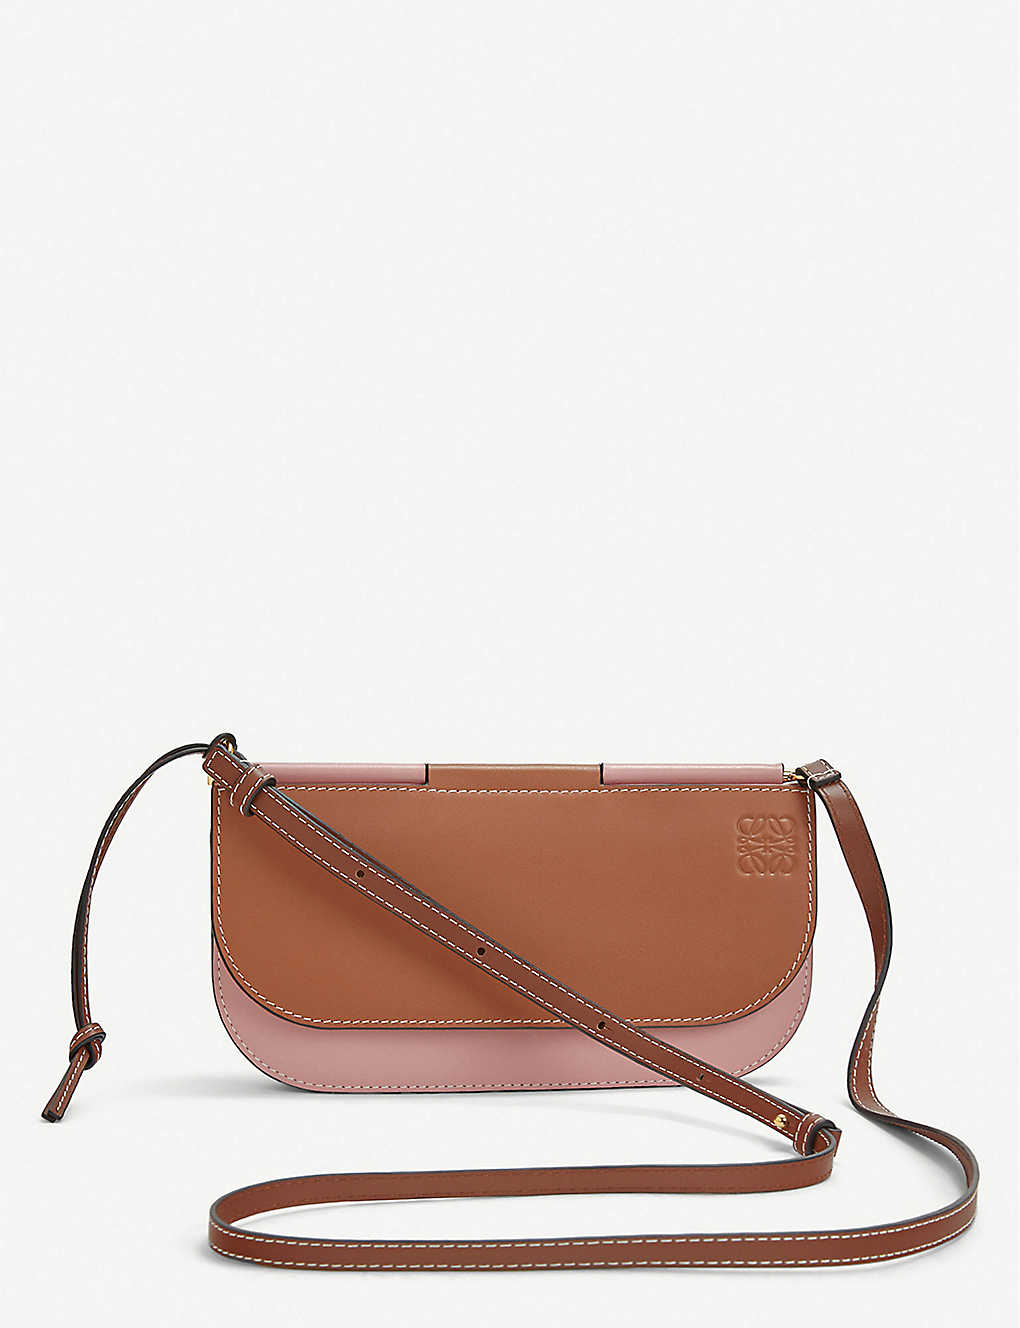 Gate Pochette leather shoulder bag - TANMEDIUM PINK